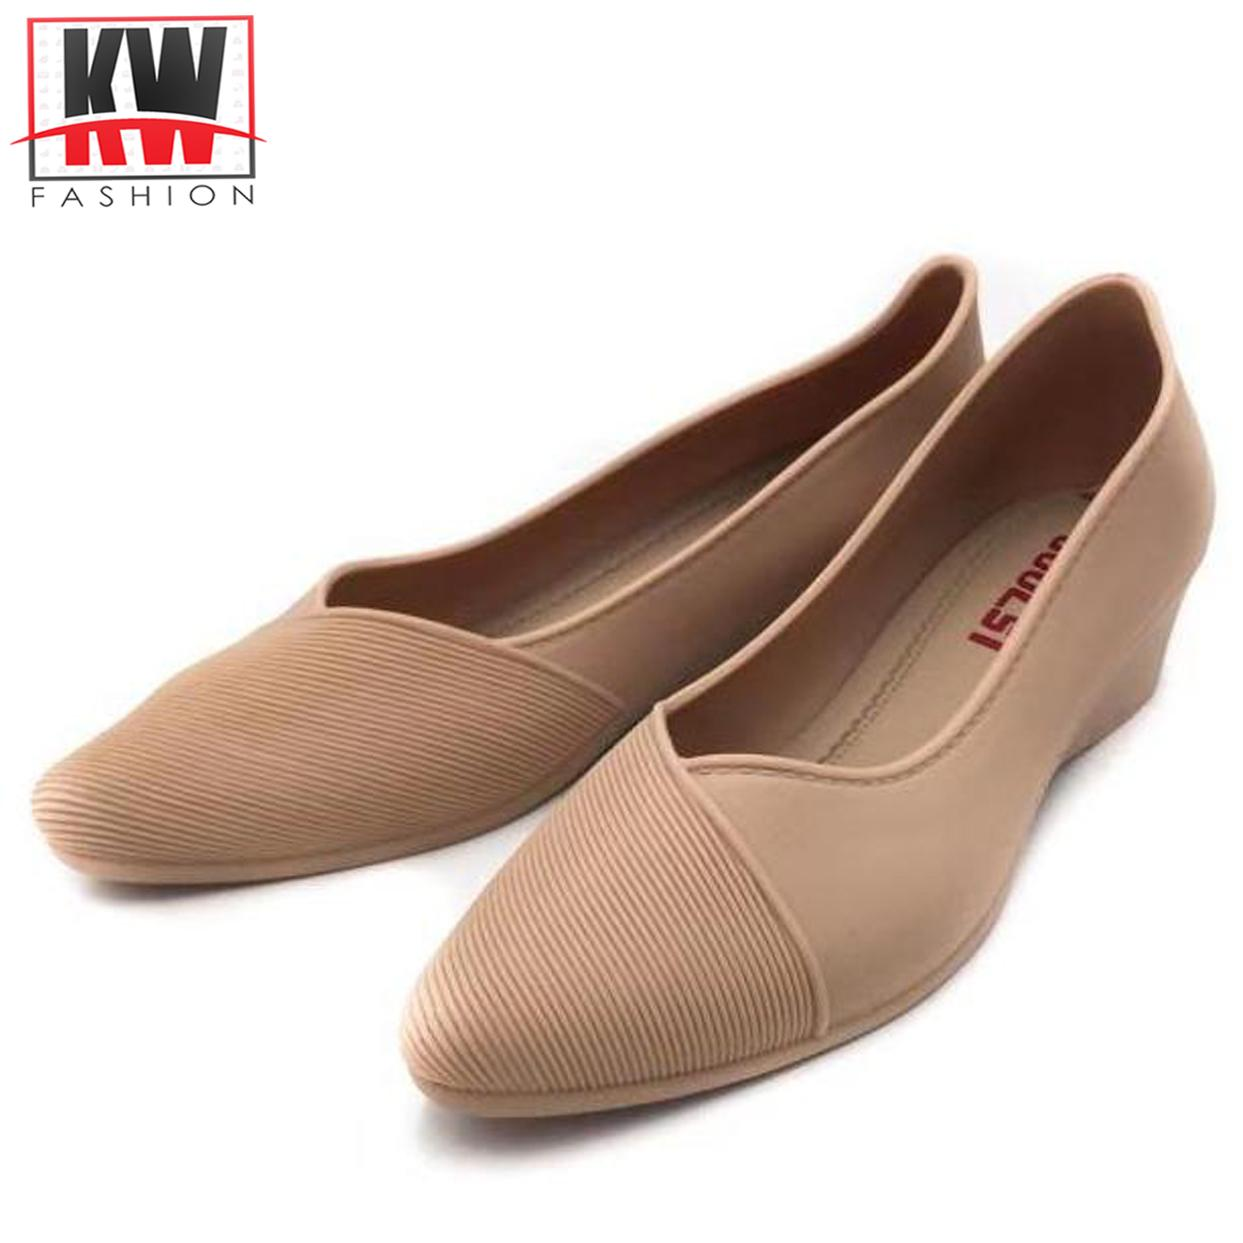 cf8880ecdf3 Shoes for Women for sale - Womens Fashion Shoes online brands ...